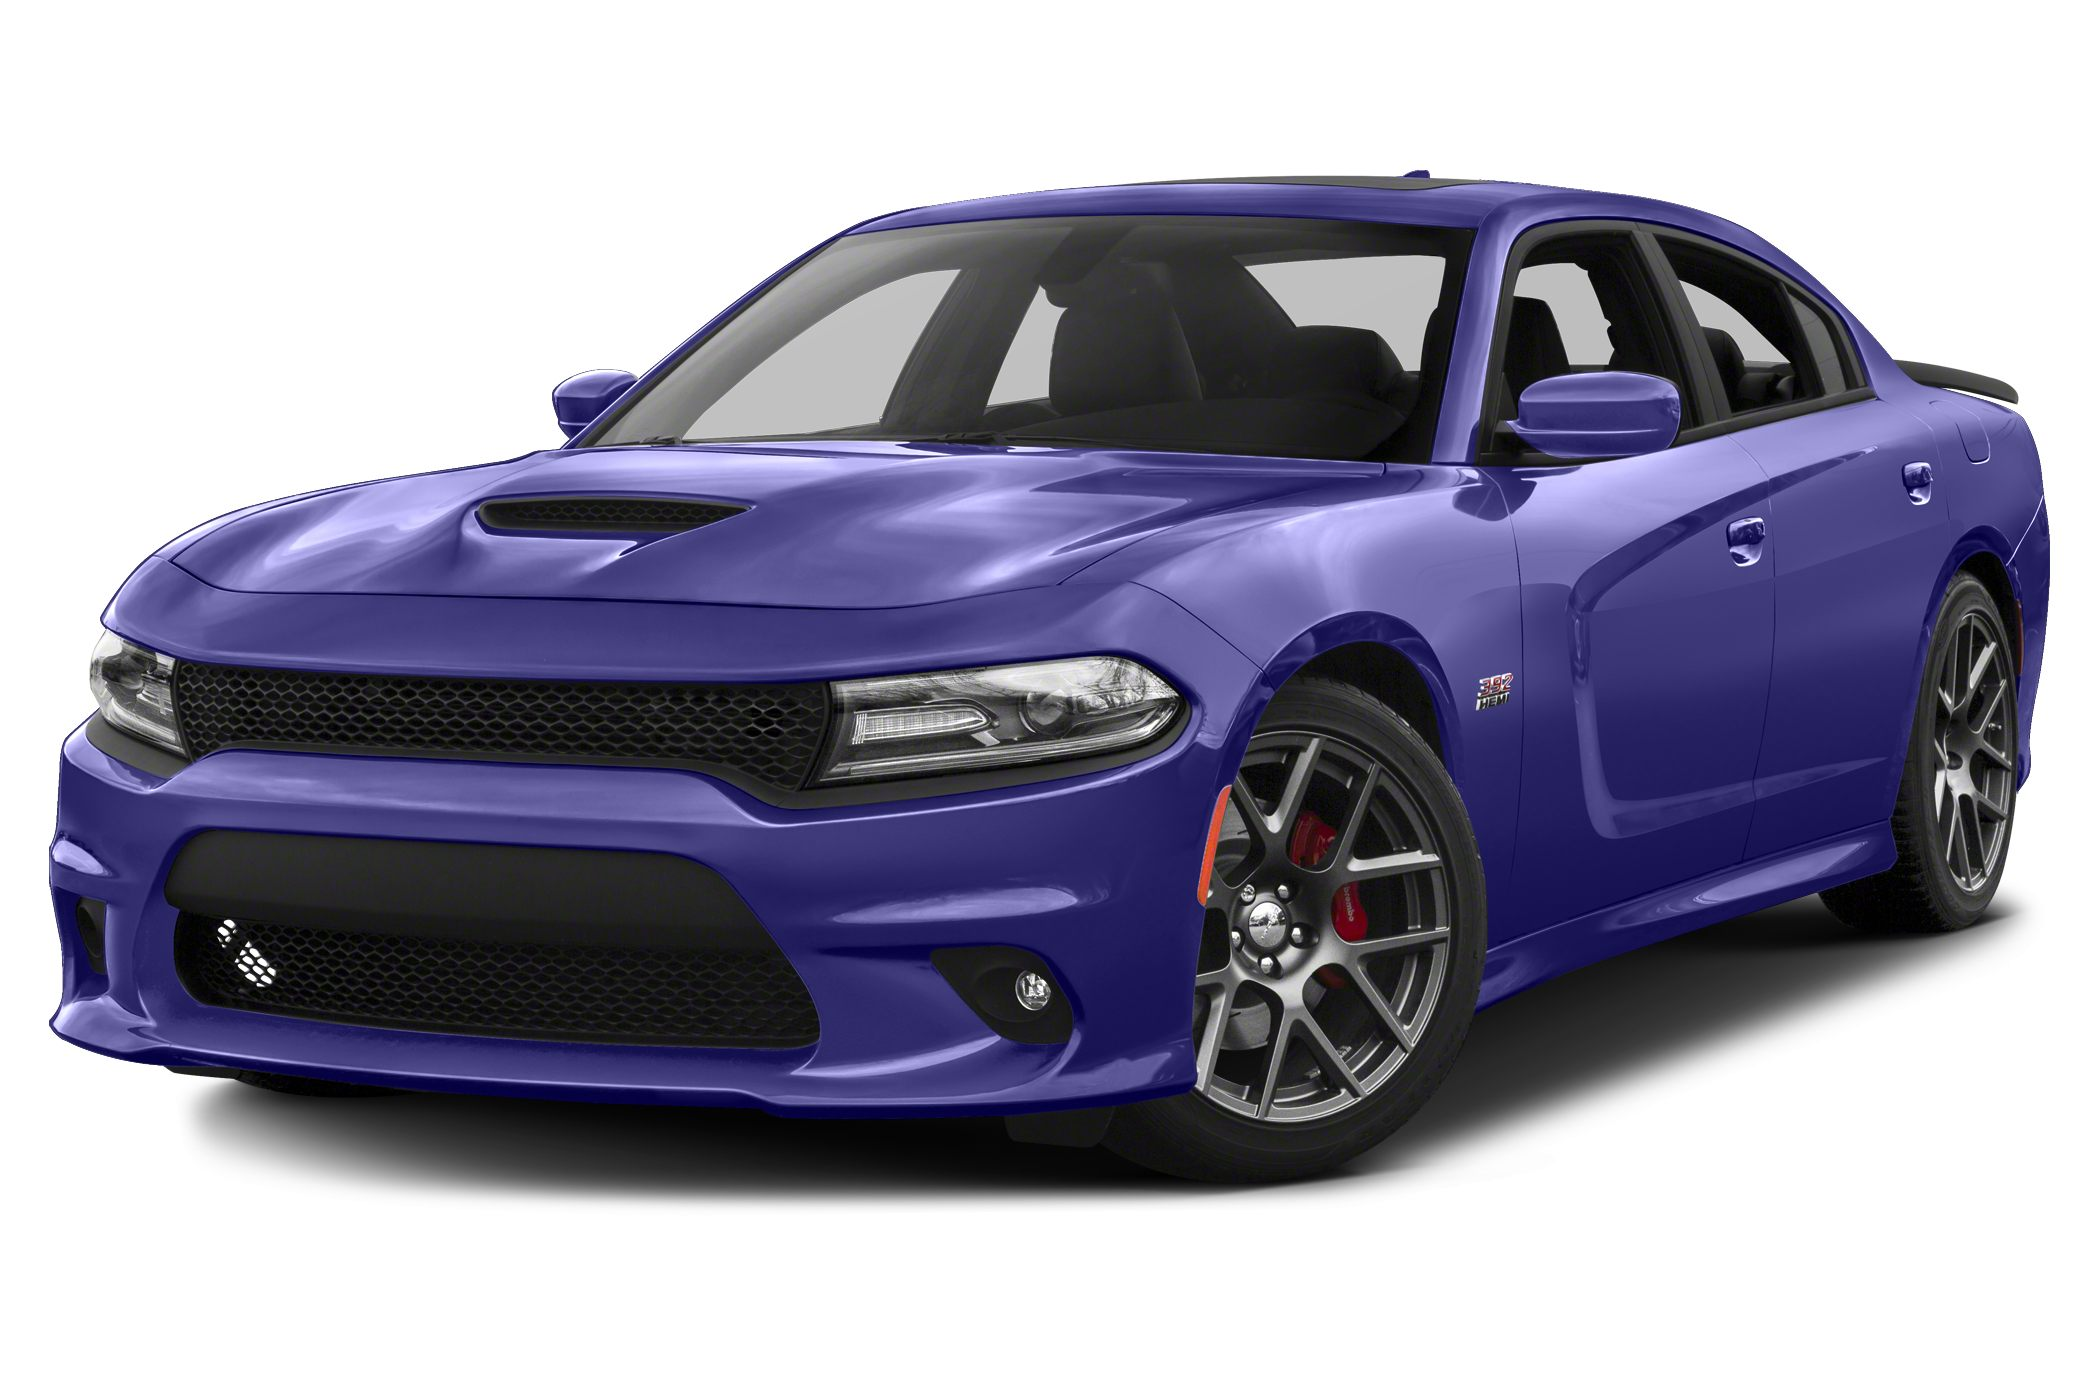 2018 Dodge Charger R/T 392 4dr Rear-wheel Drive Sedan